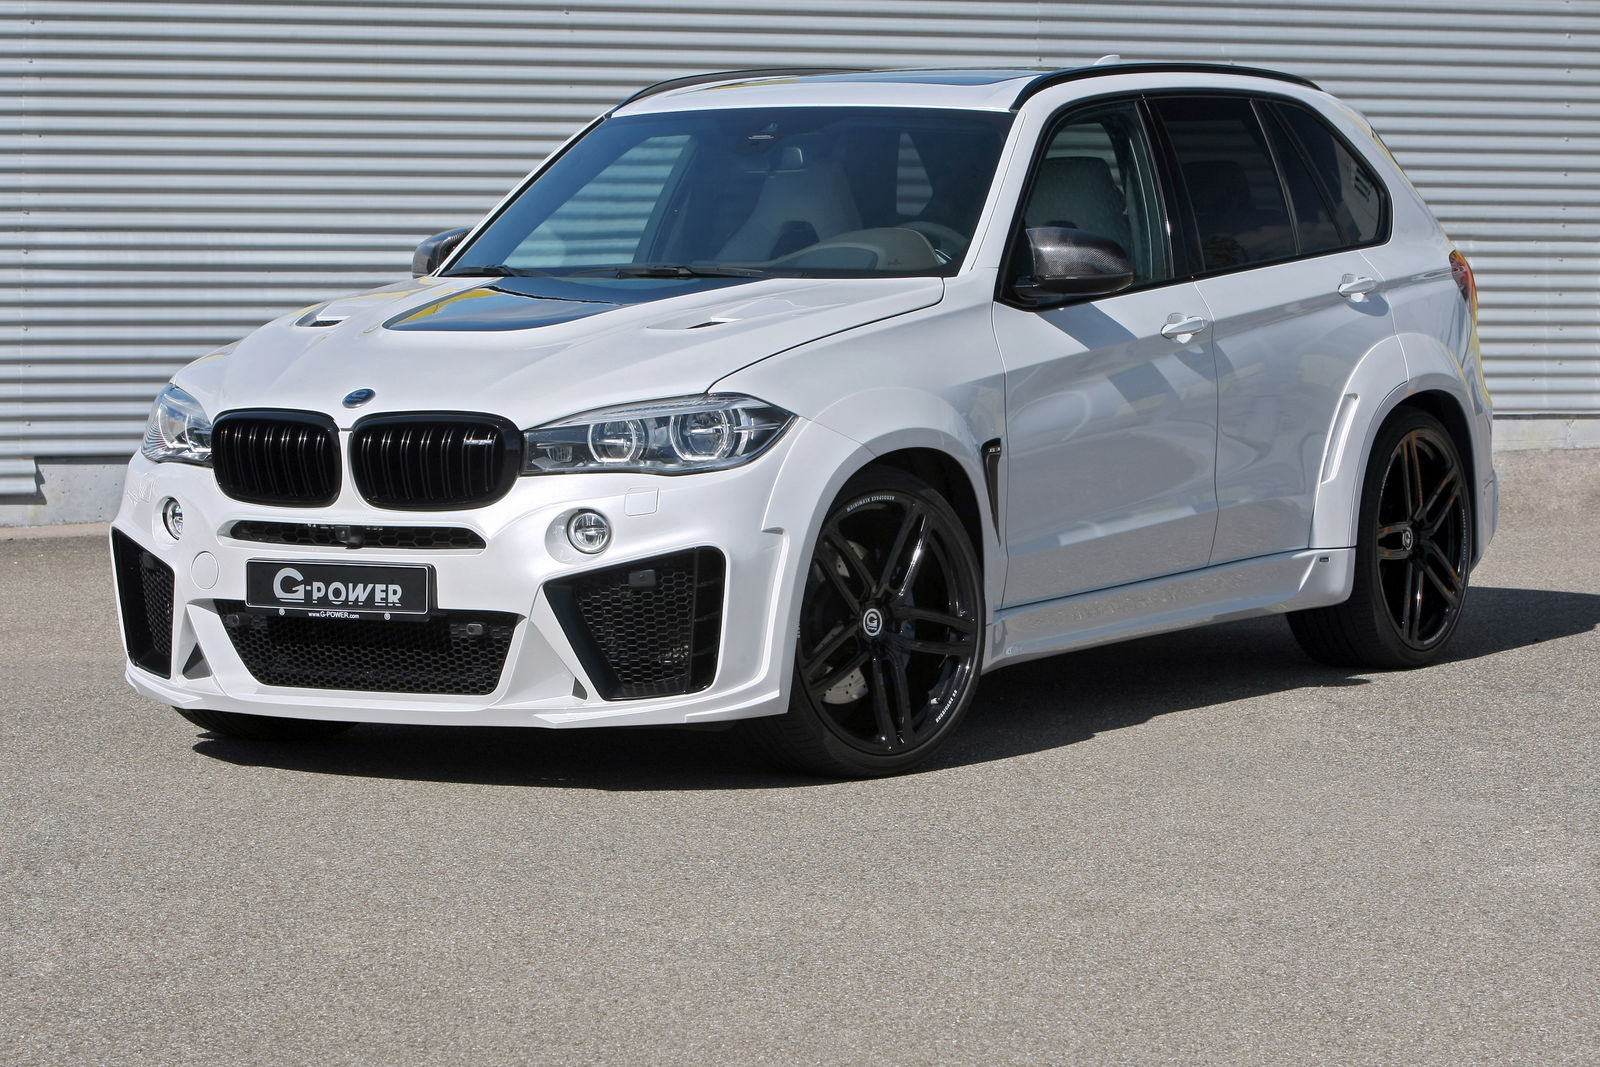 g power kits bmw x5 with typhoon wide body kit backed by power. Black Bedroom Furniture Sets. Home Design Ideas